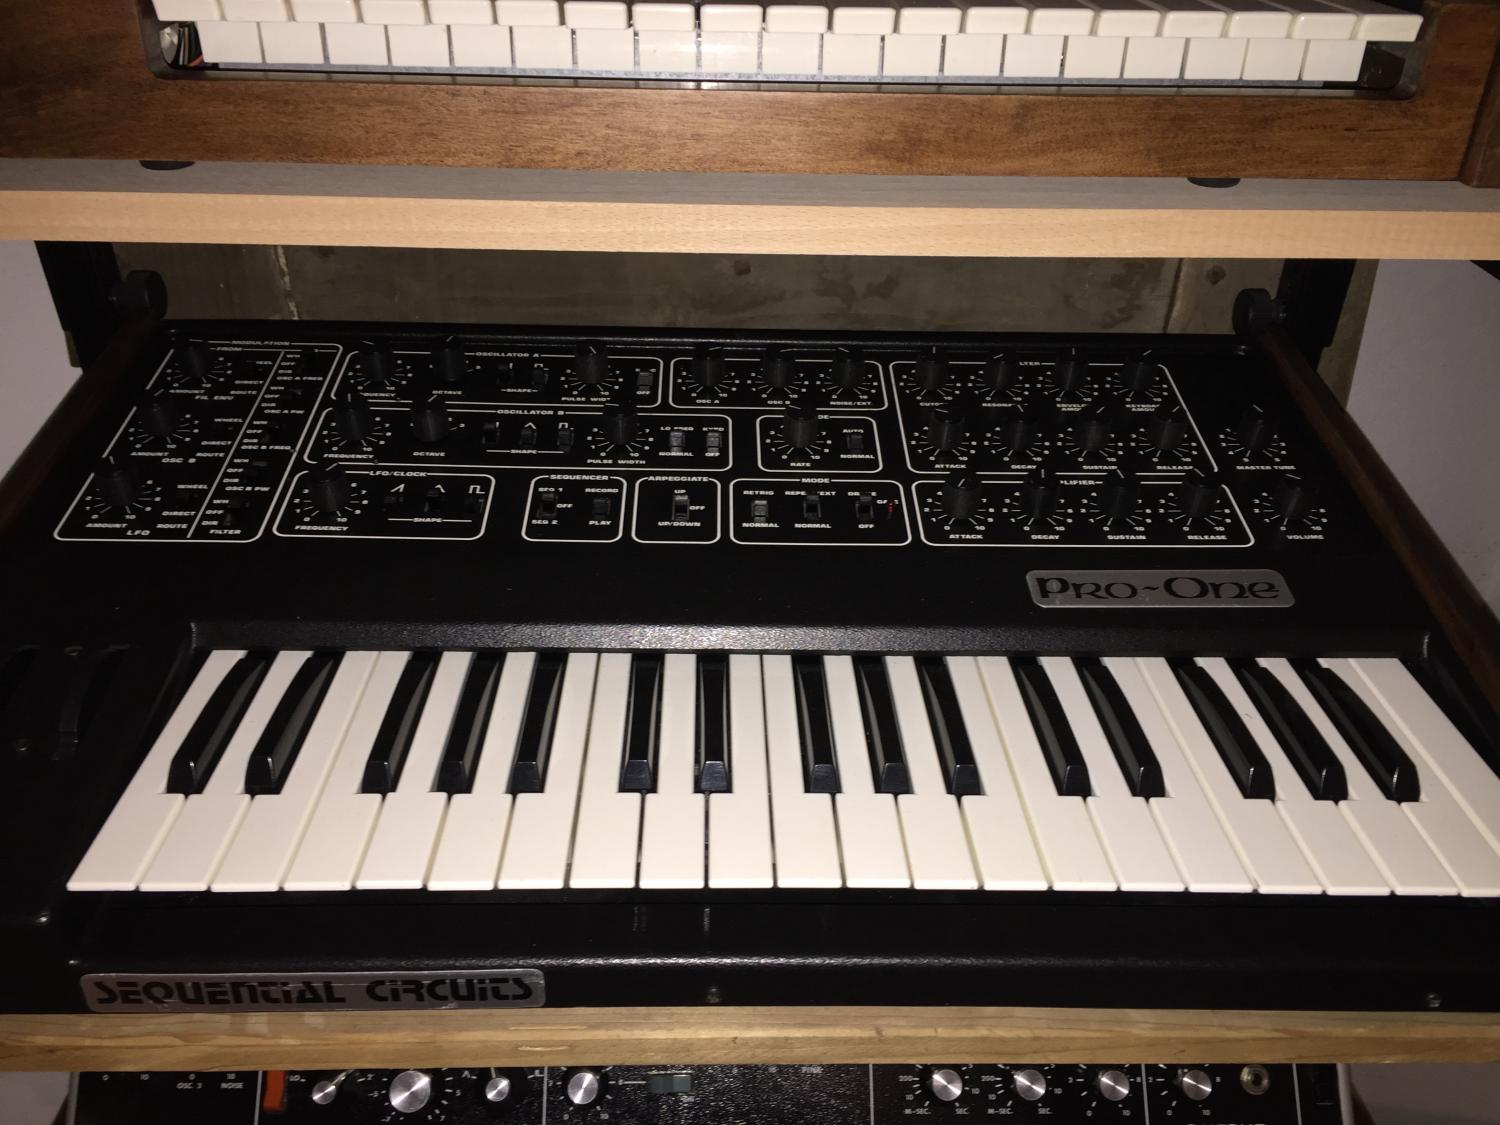 Sequential Circuits Pro One S.Nr. 0315